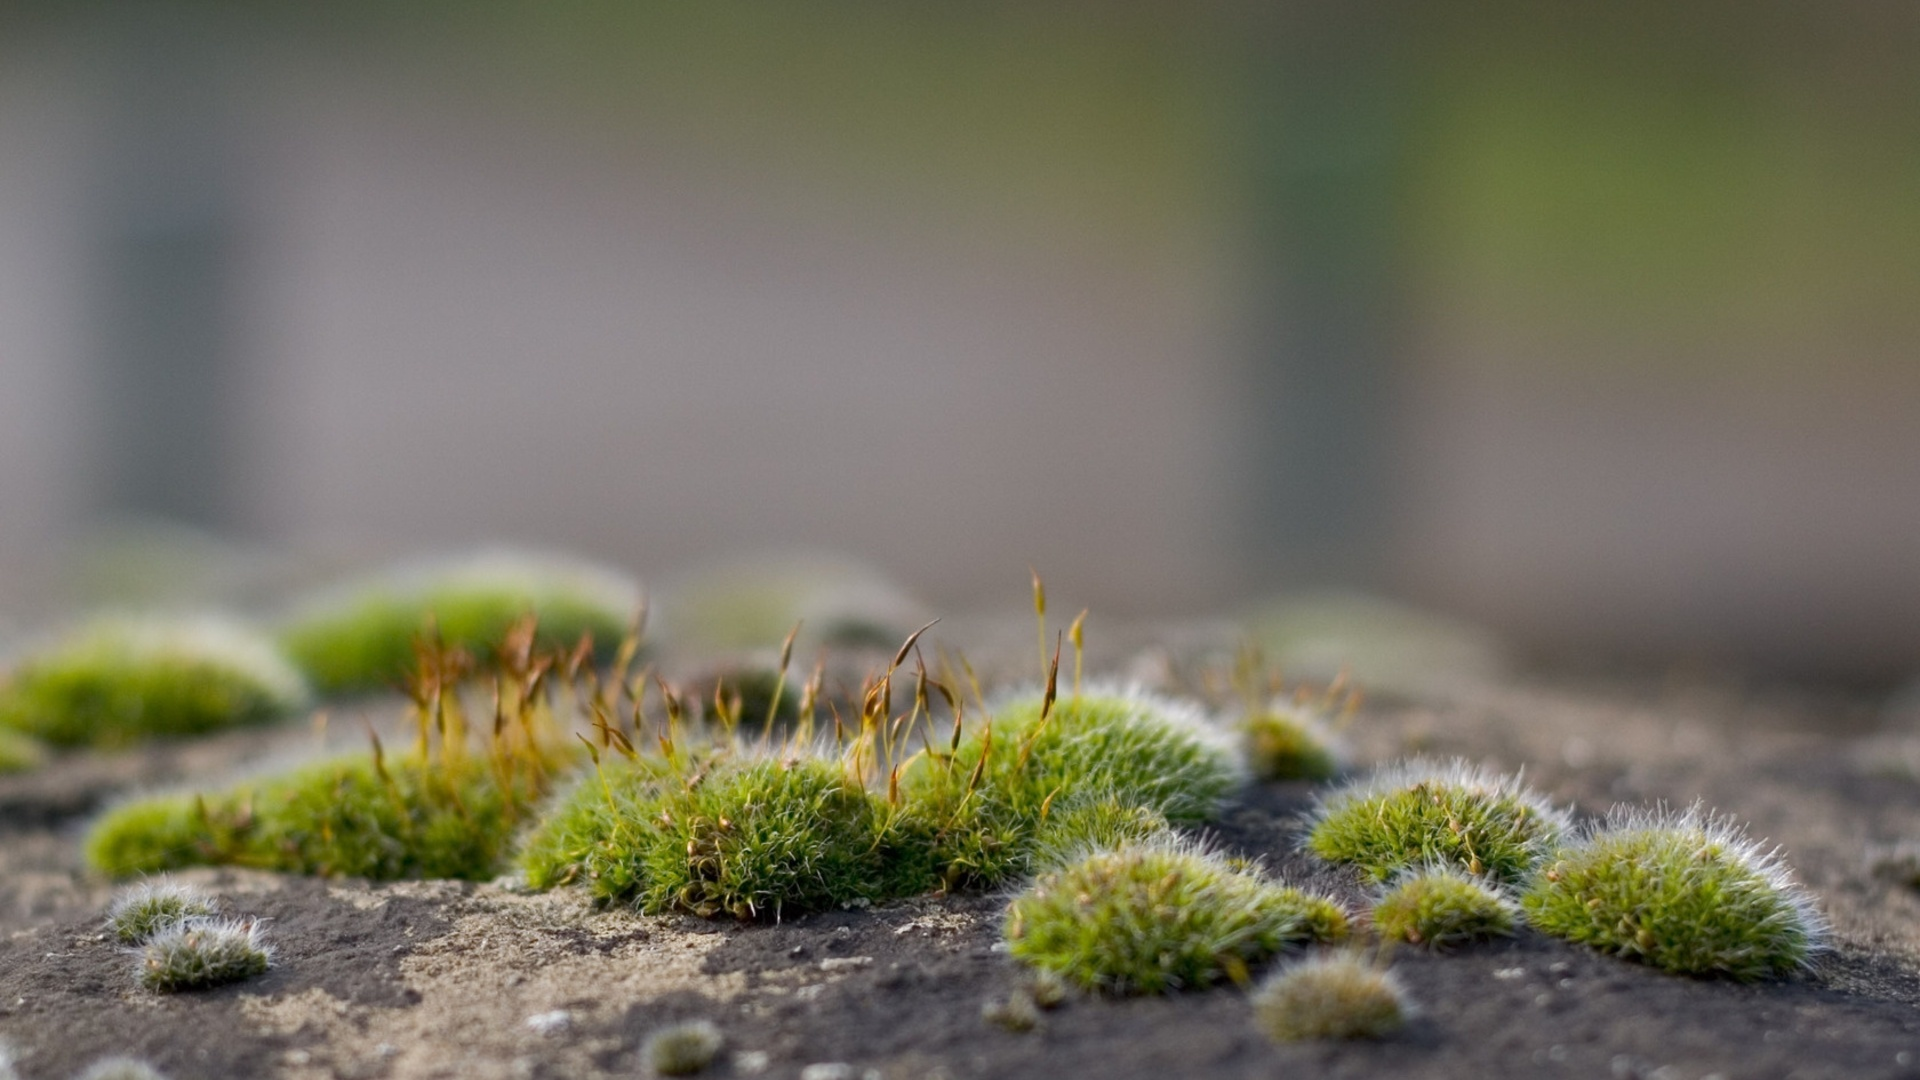 Stones And Moss wallpaper for computer